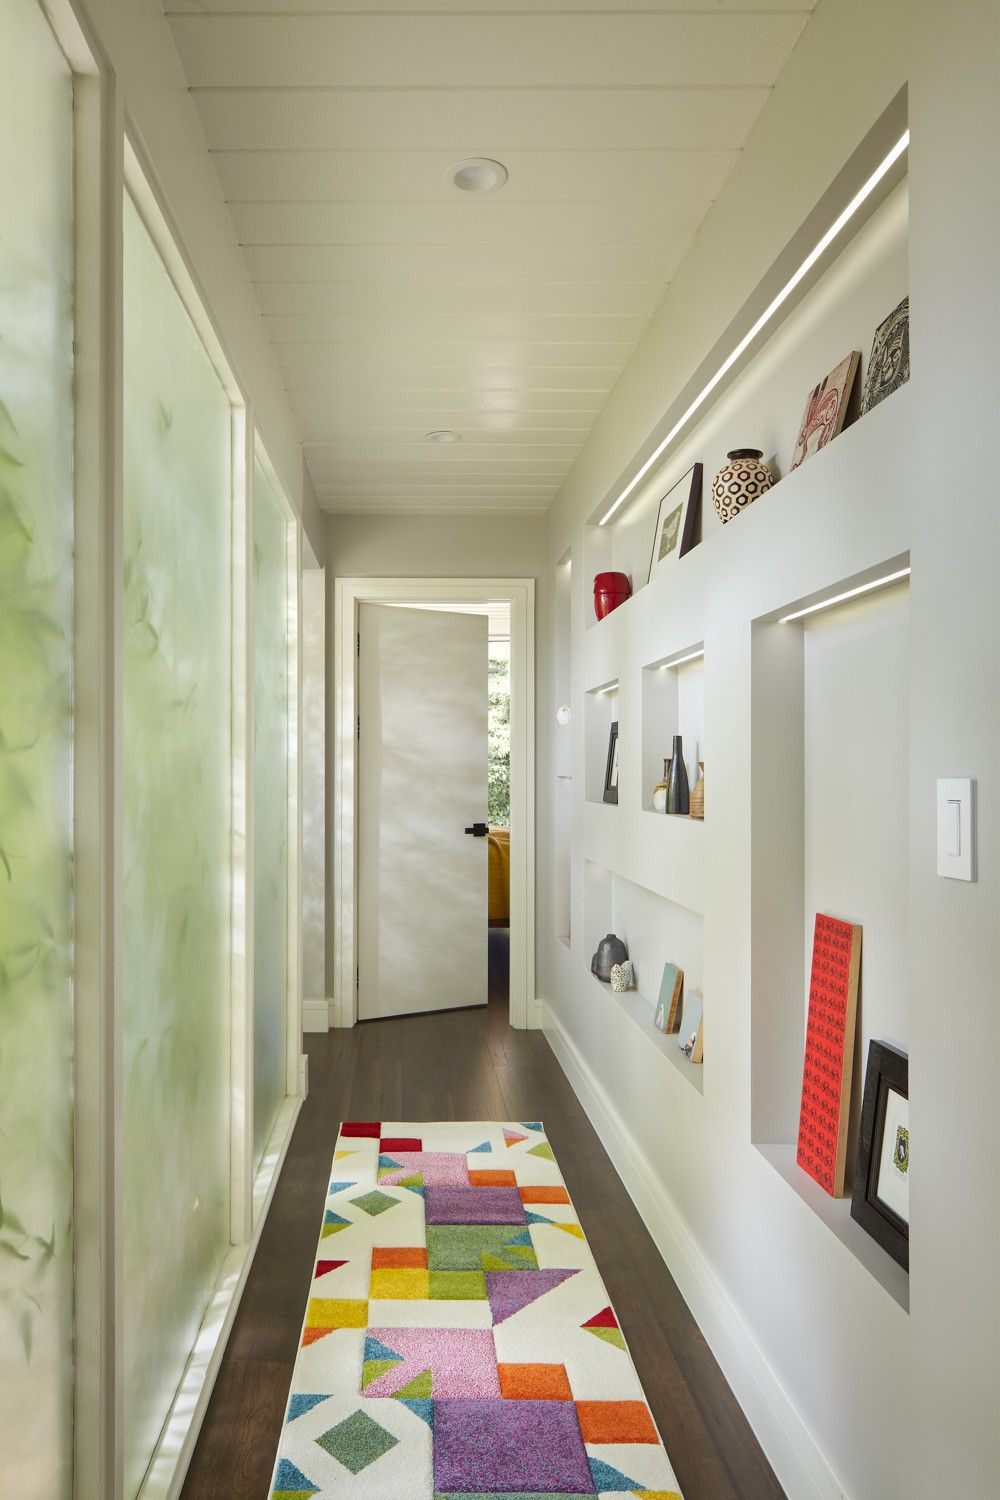 You do not need much shelf space to create a lovely display wall in the hallway